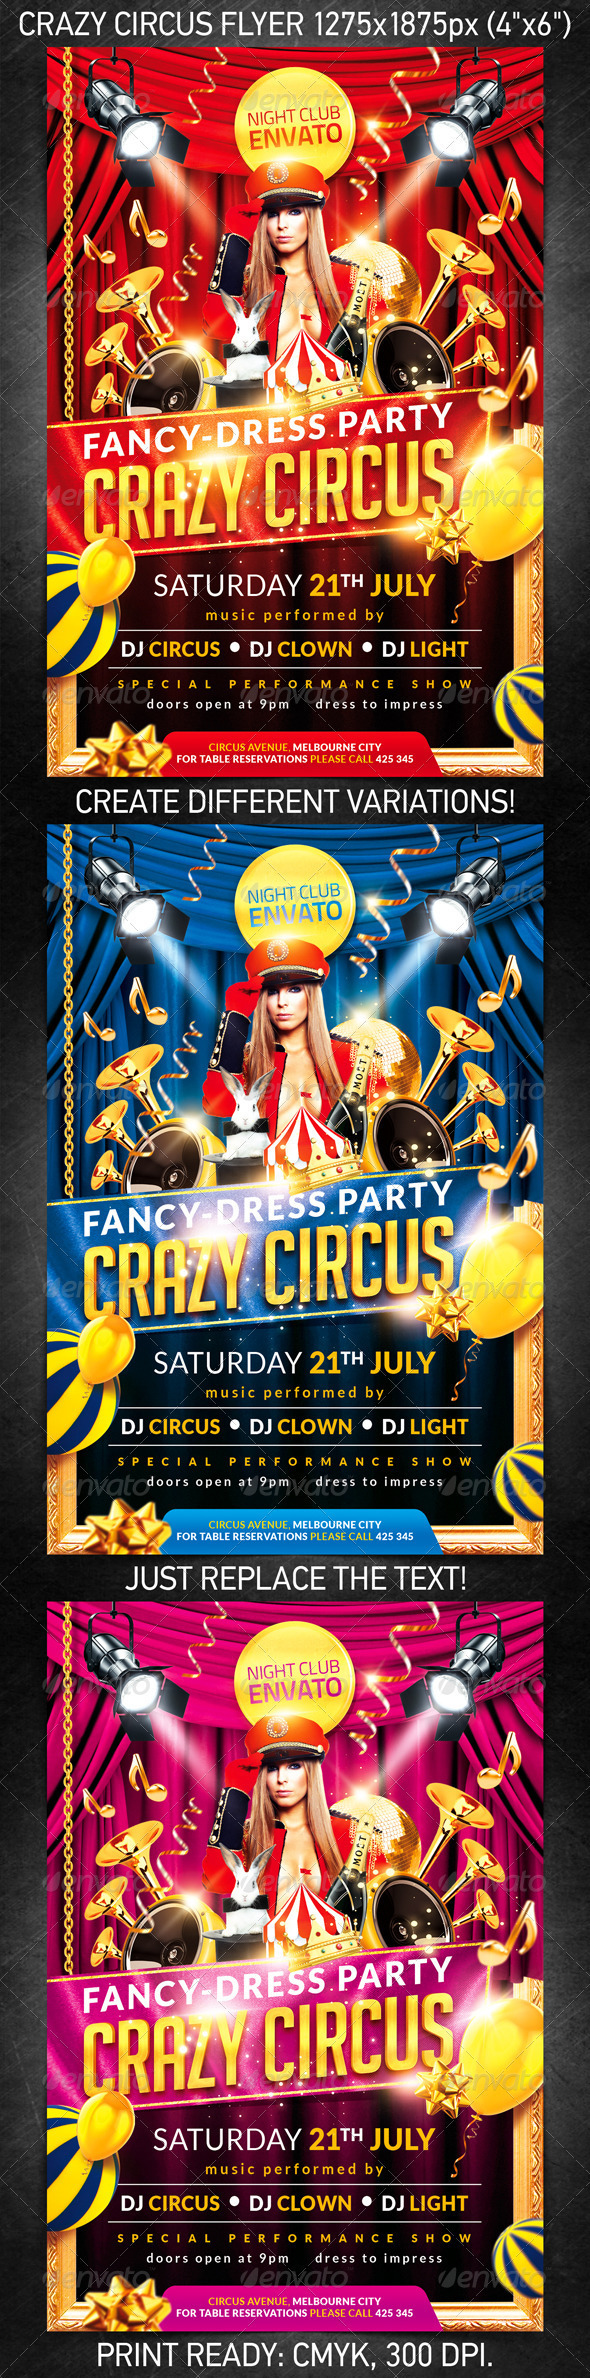 Crazy Circus Party Flyer, PSD Template on Behance